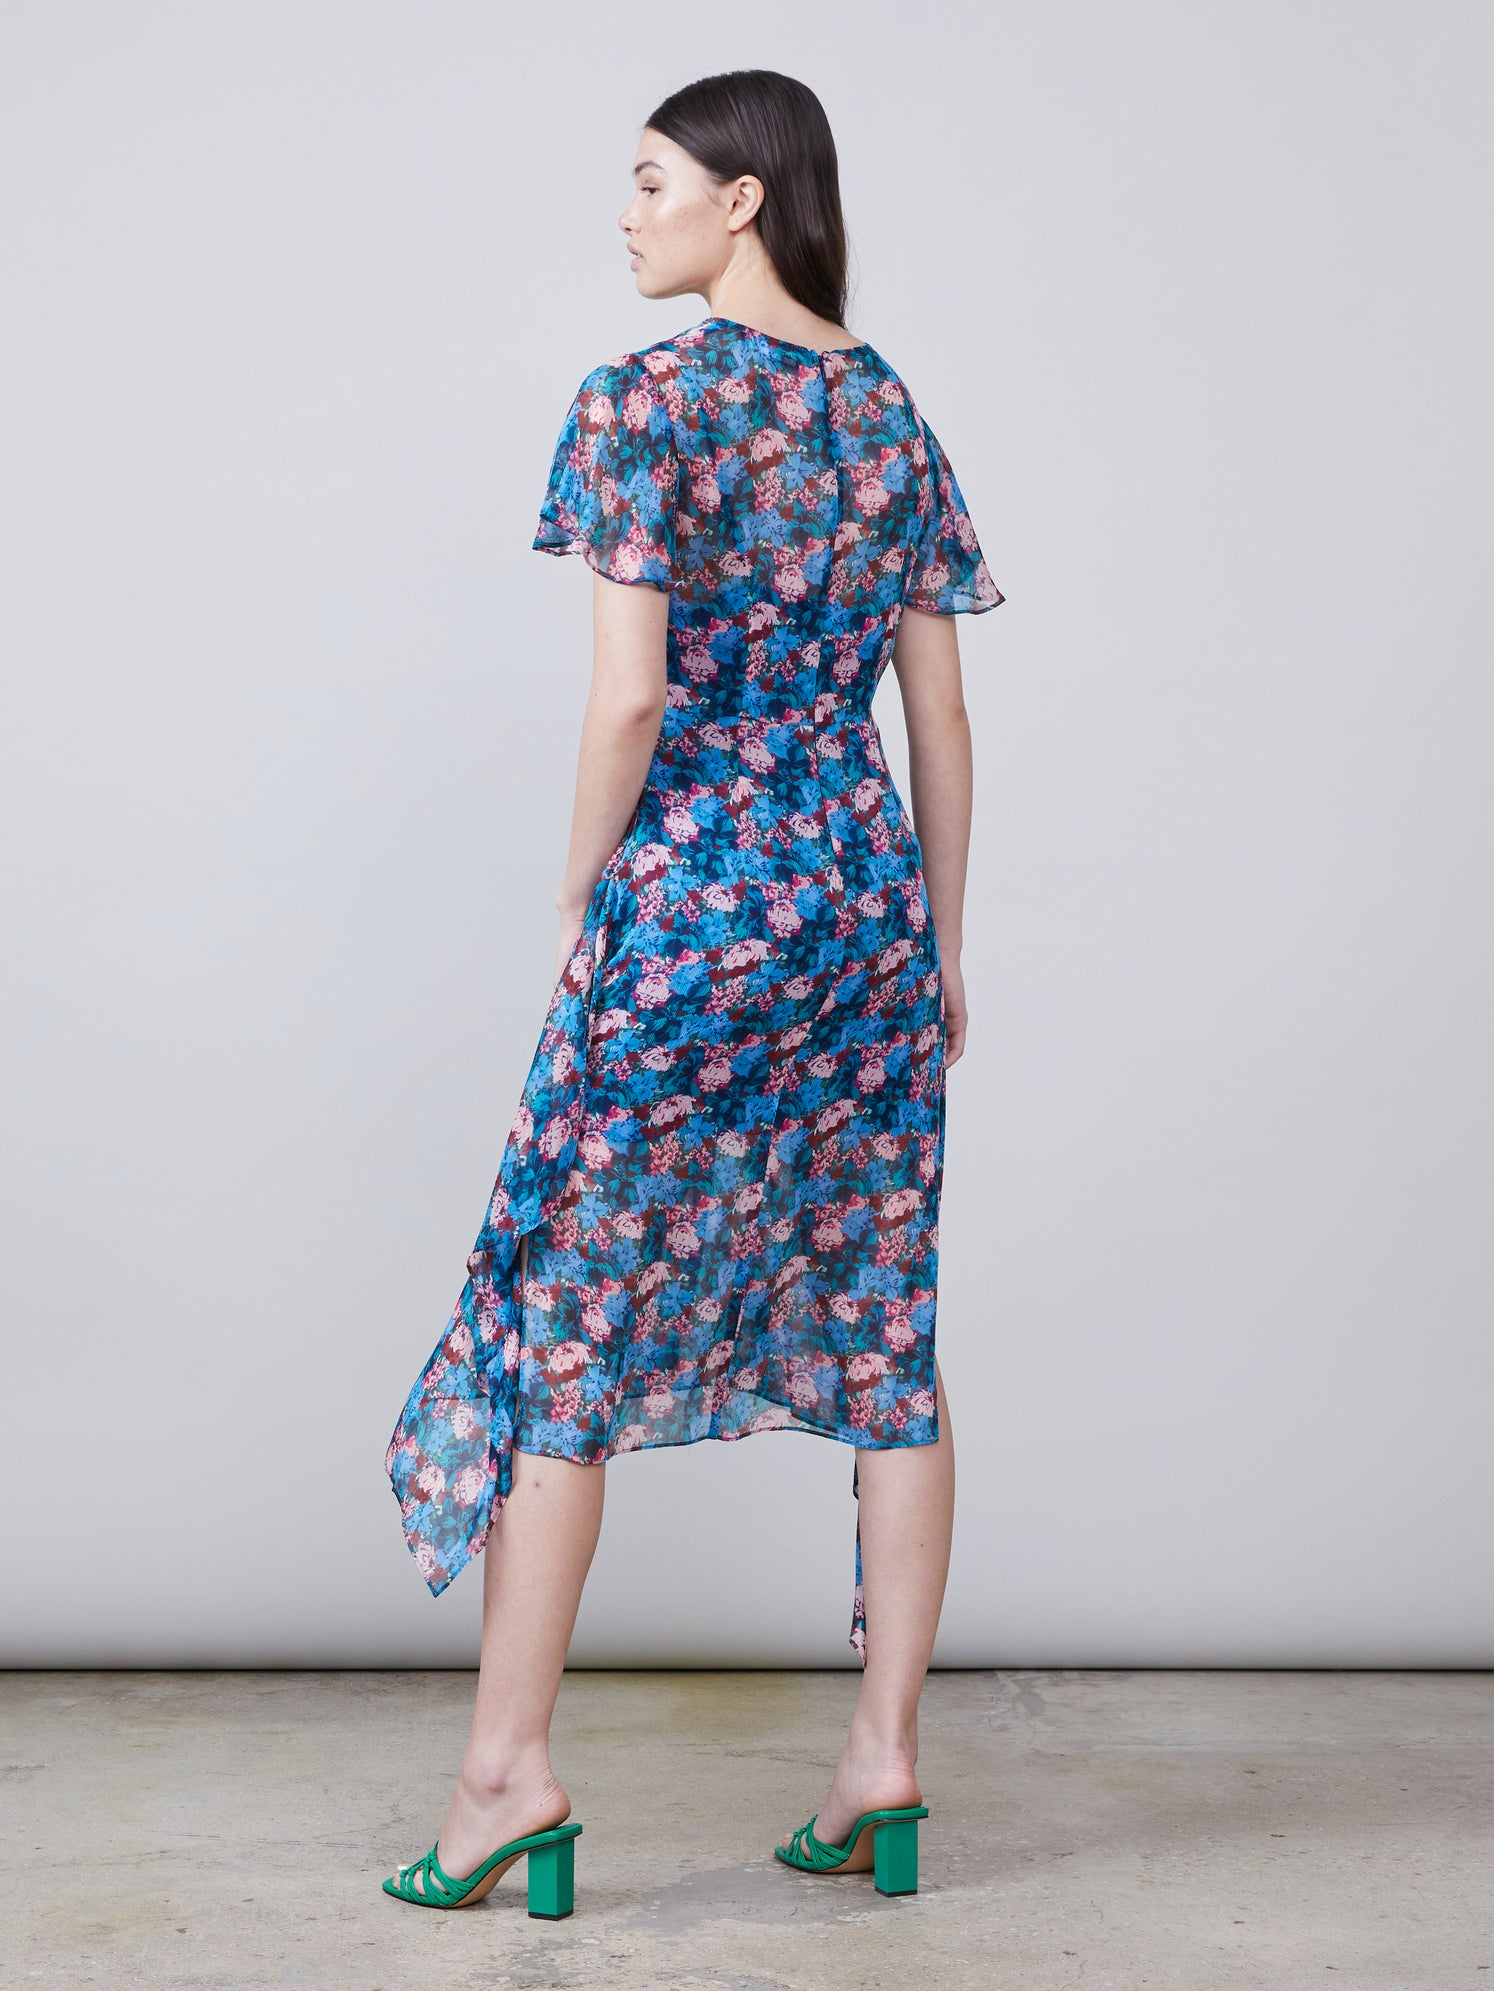 Ruffled floral print hanky hem dress